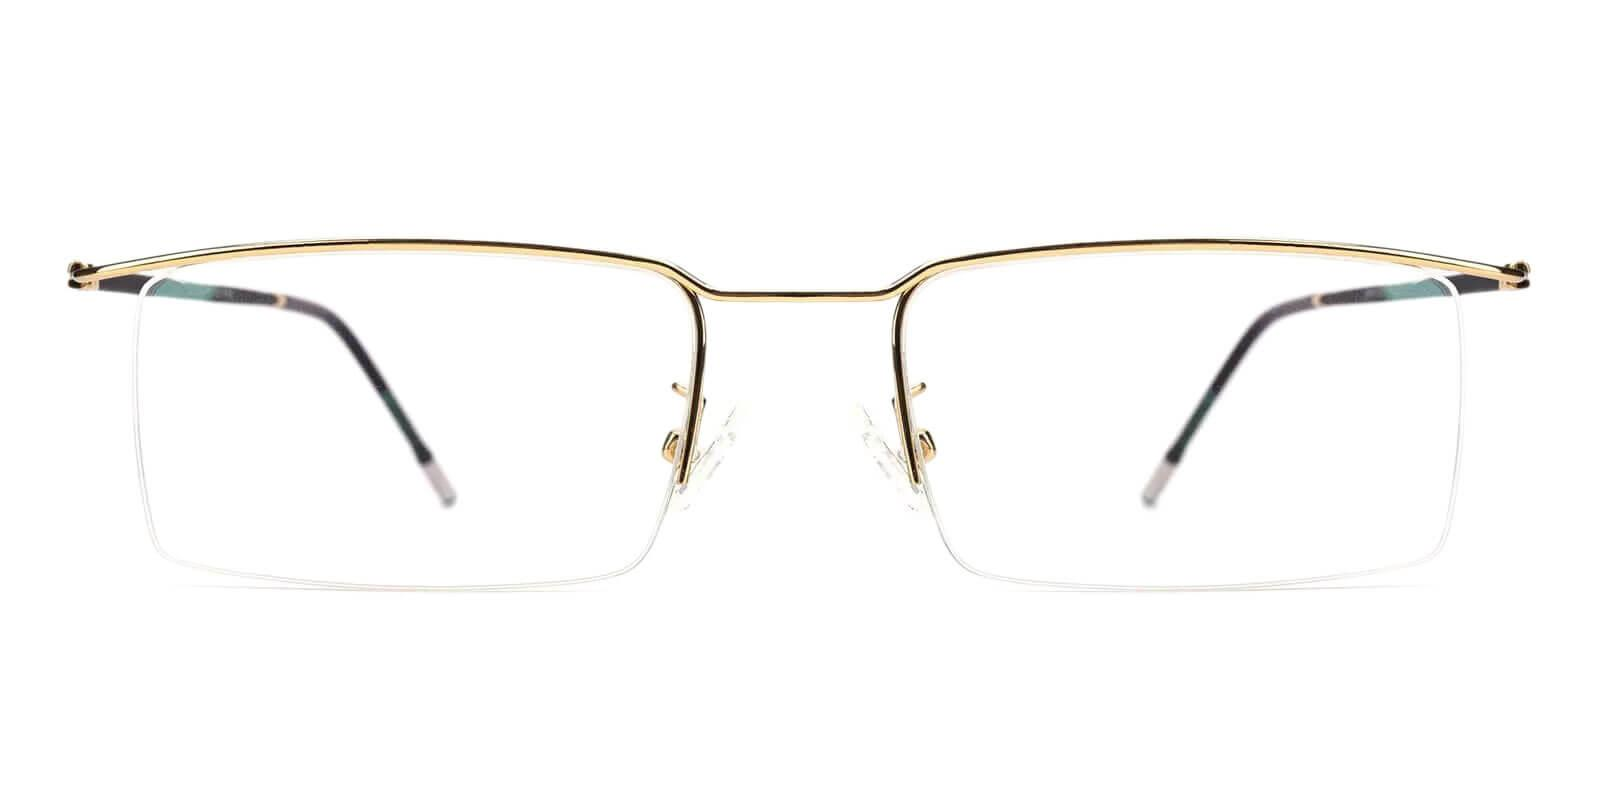 Wit Gold Metal Eyeglasses , NosePads Frames from ABBE Glasses